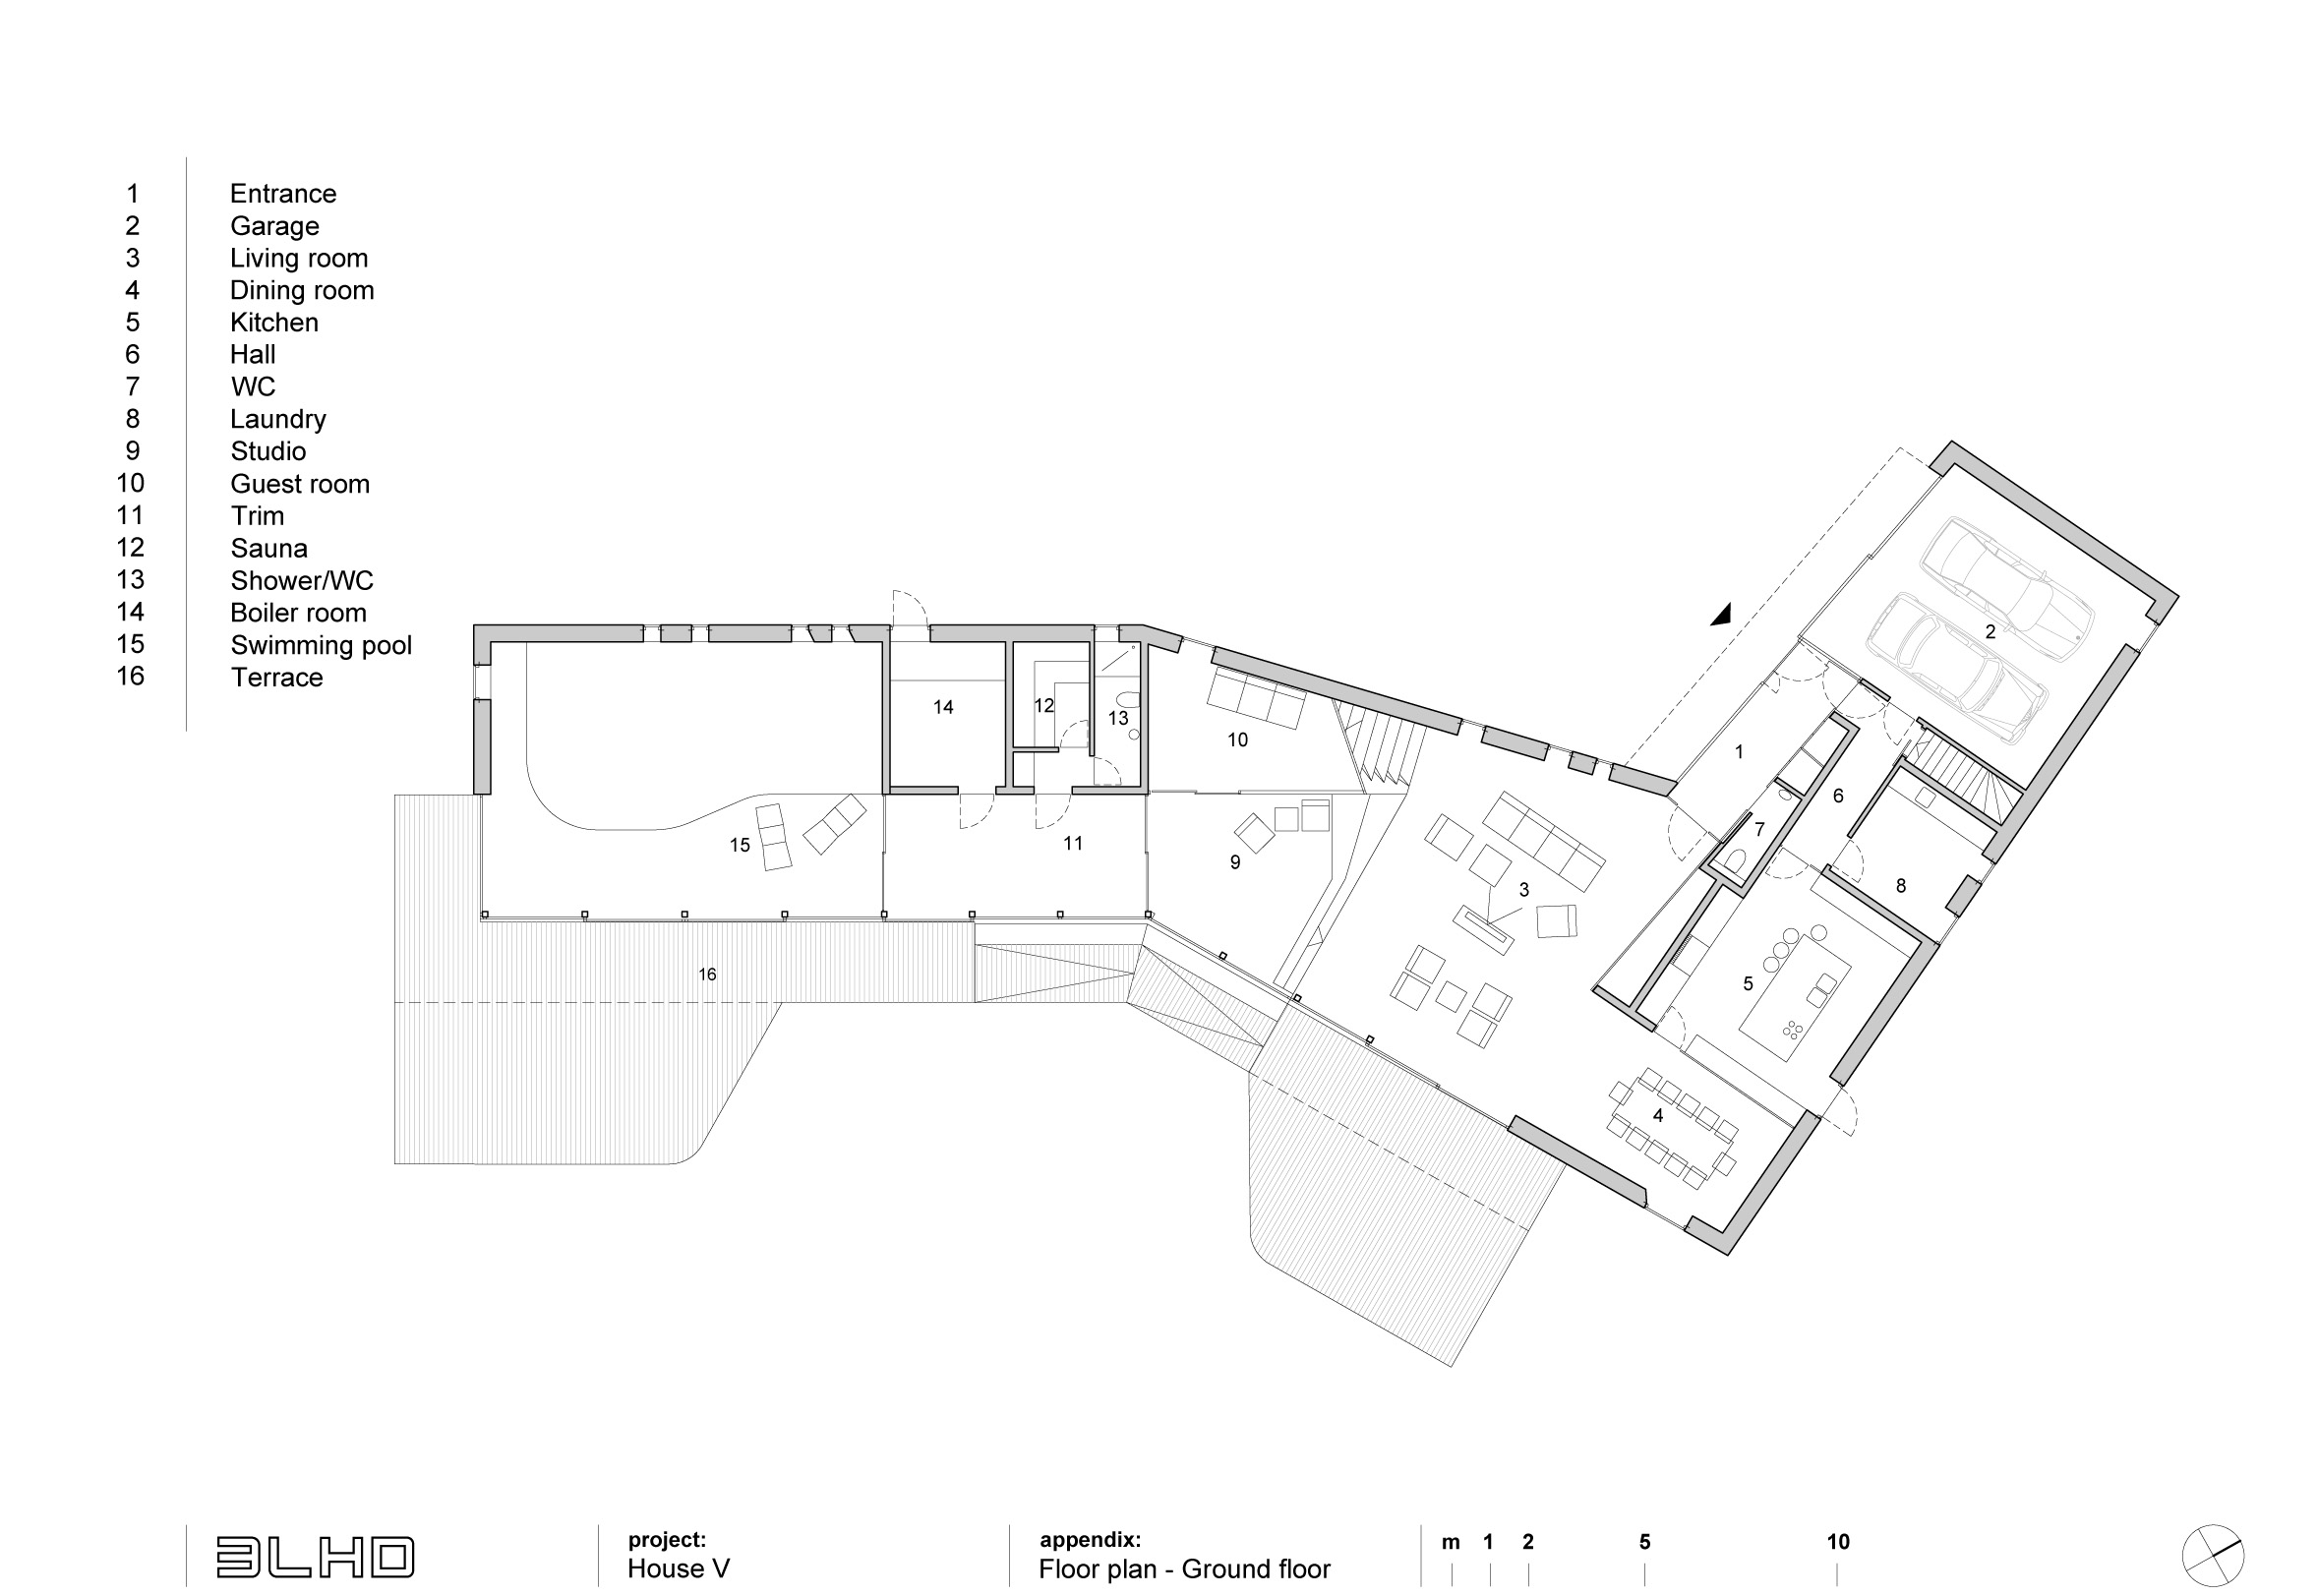 plan-ground ground plan